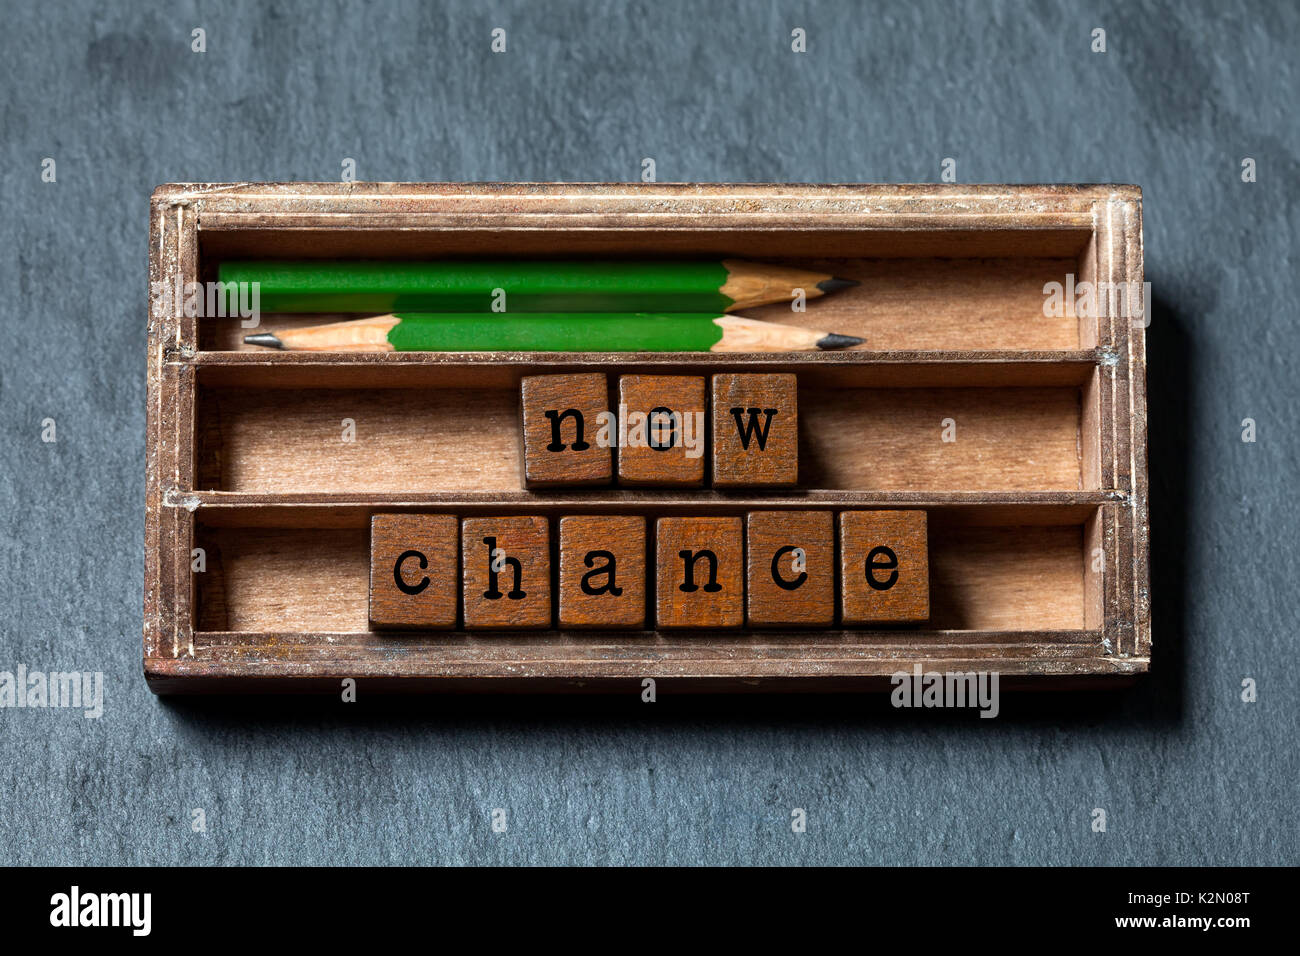 New chance phrase. Motivation and positive expectations concept. Vintage box, wooden cubes with old style letters, green pencils. Gray stone textured background. Close-up, up view, soft focus - Stock Image